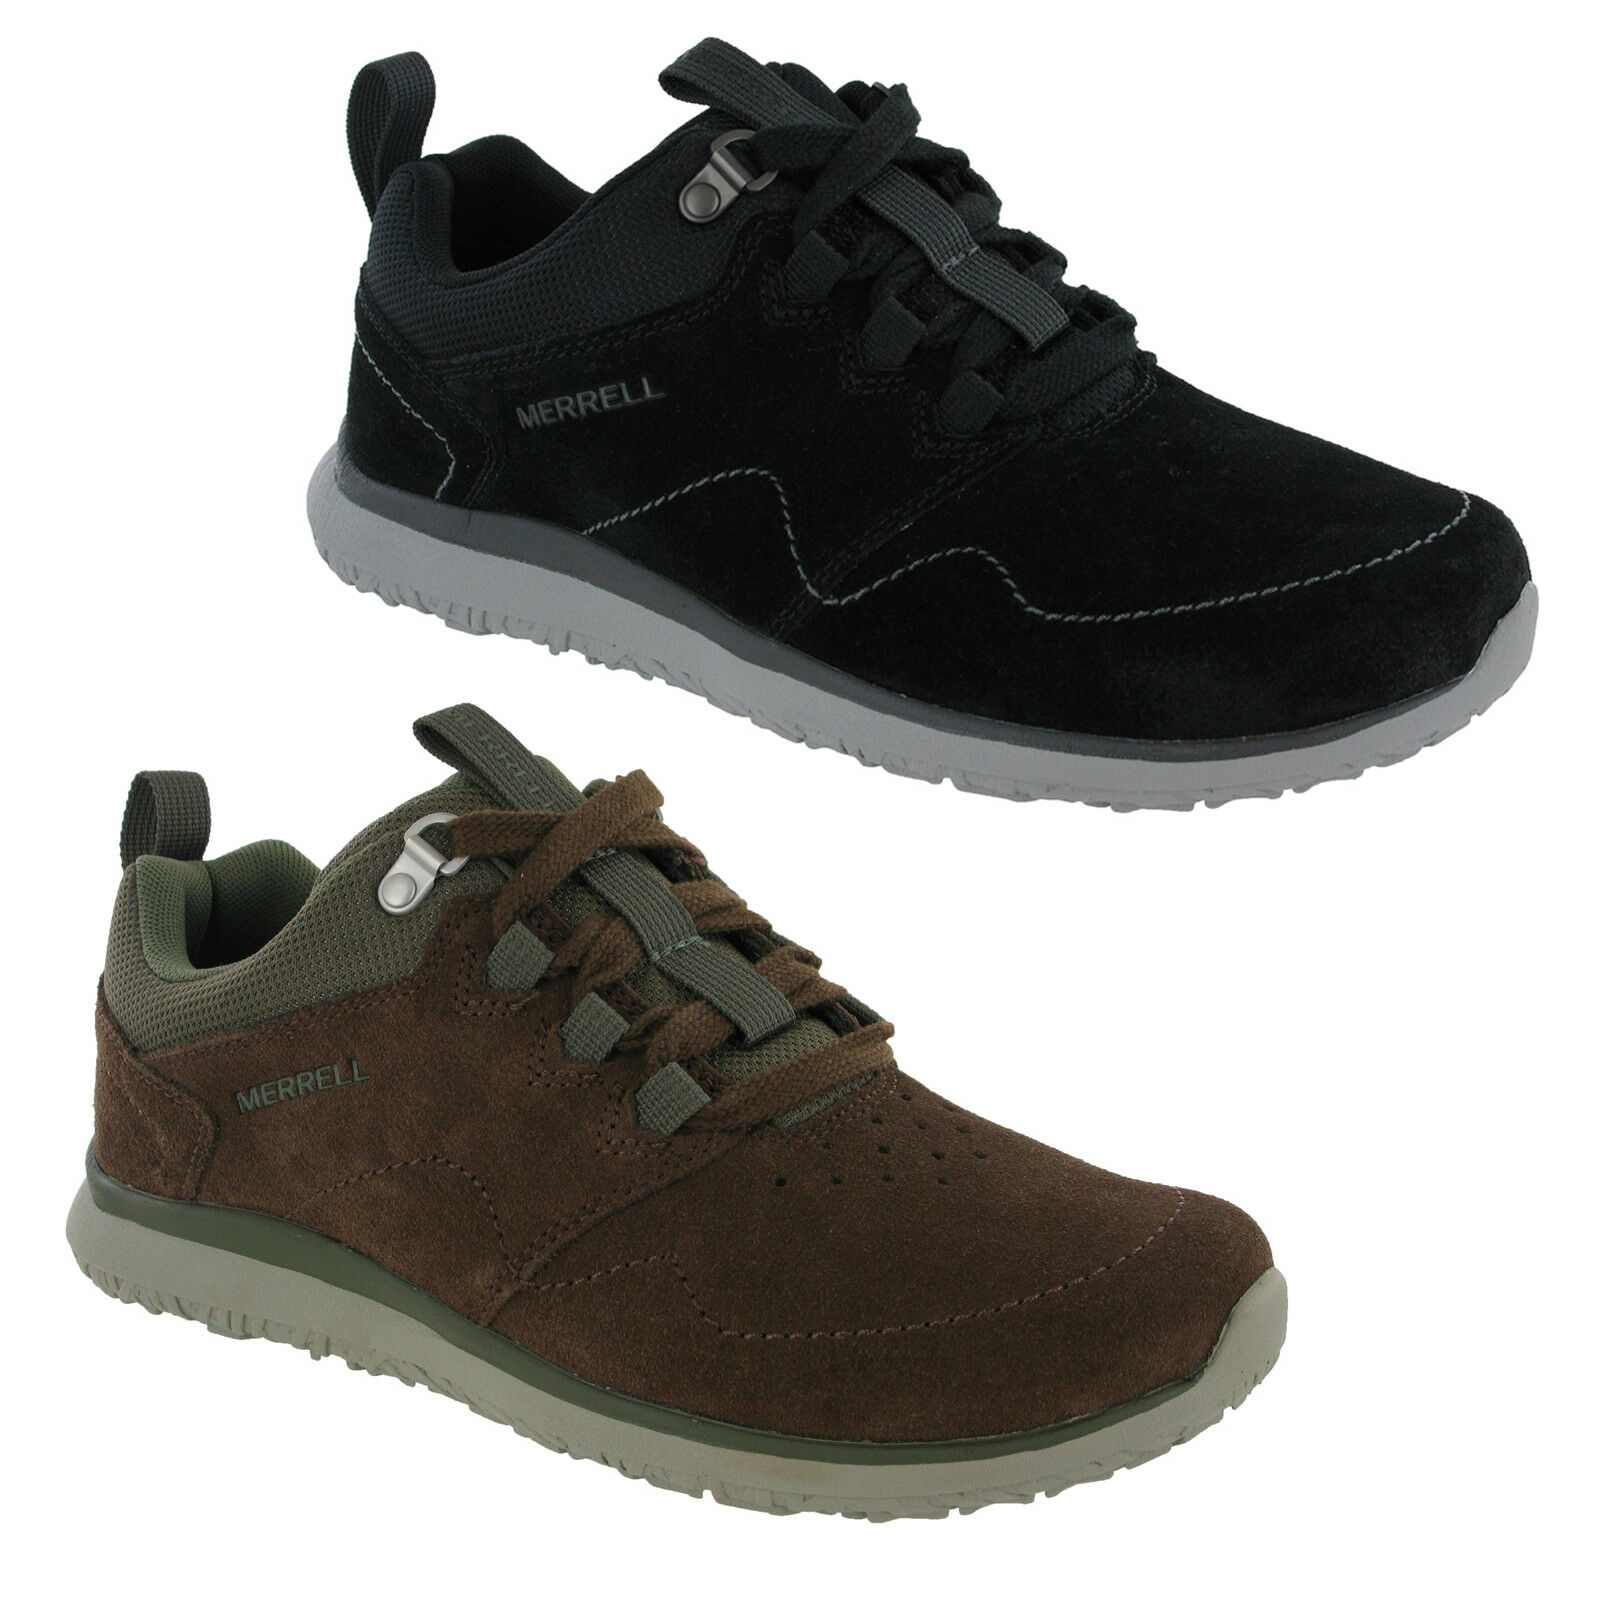 Merrell Getaway Locksley Comfy Lace Ltr Mens Casual Comfy Locksley Lace Up Stylish Trainers 7089e5